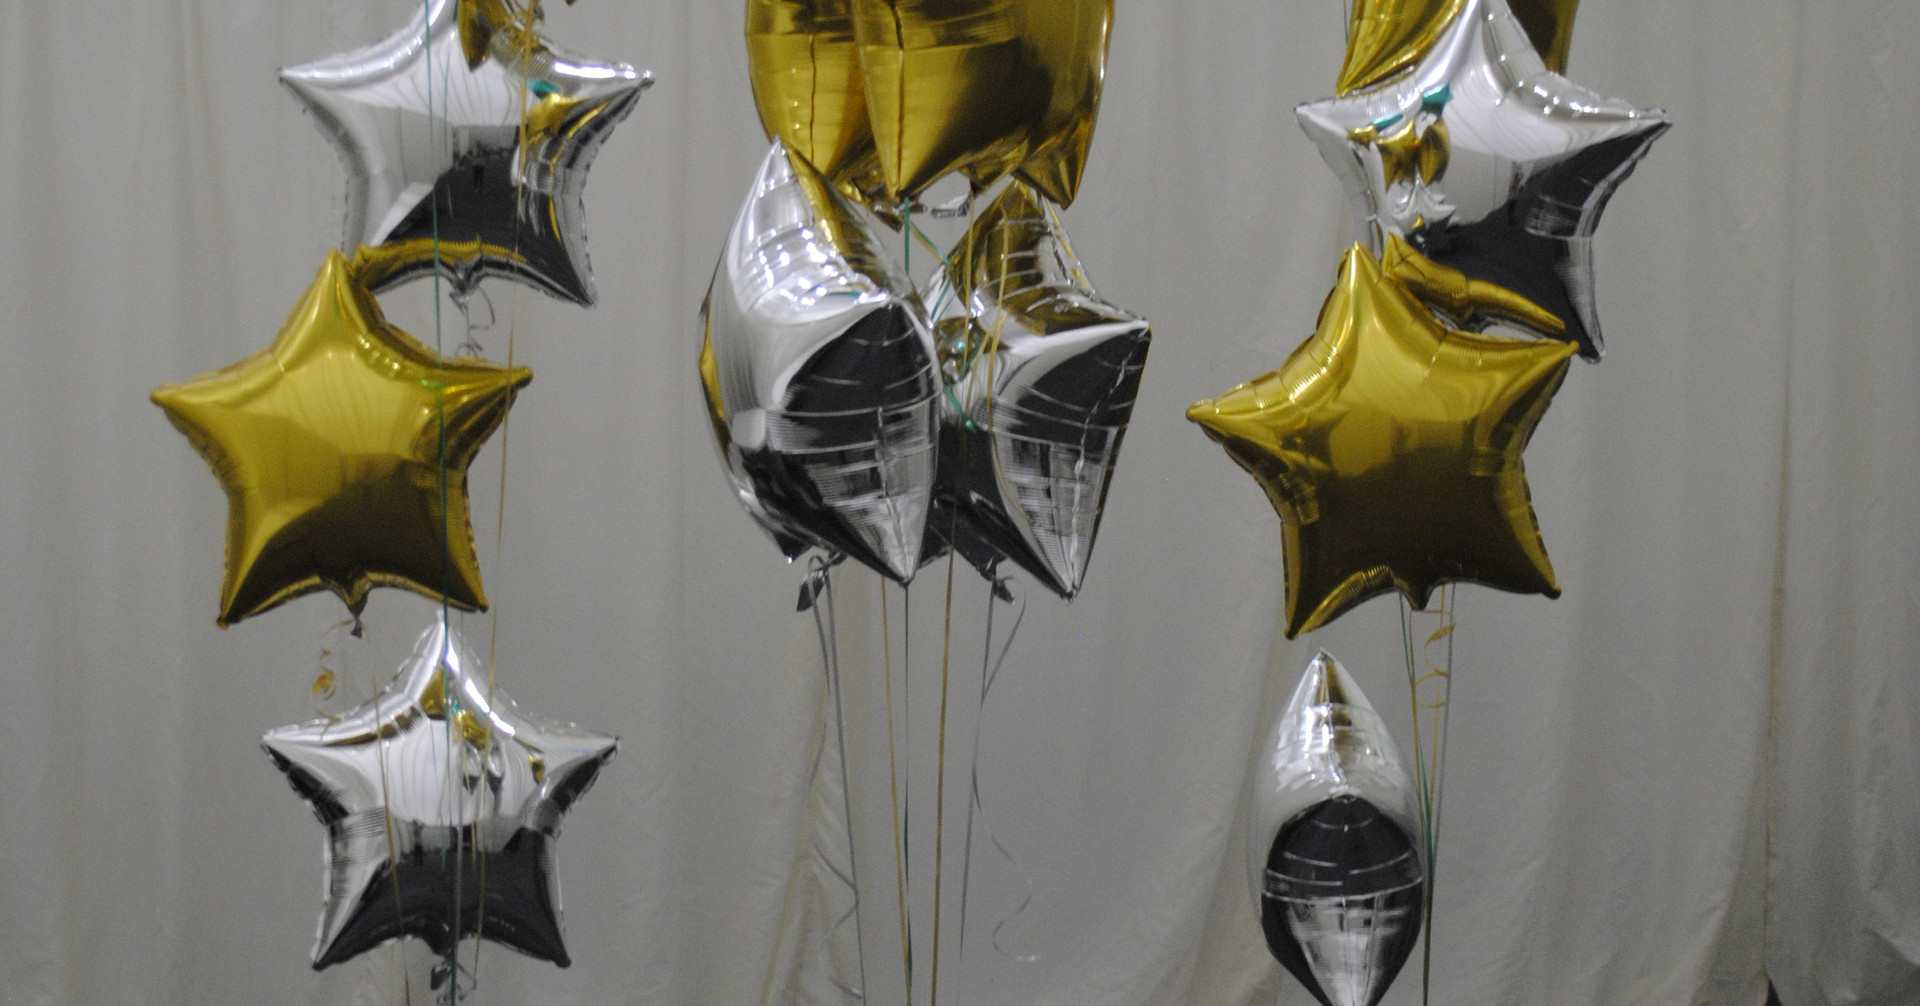 Green, gold and silver clusters of 5 foil balloons